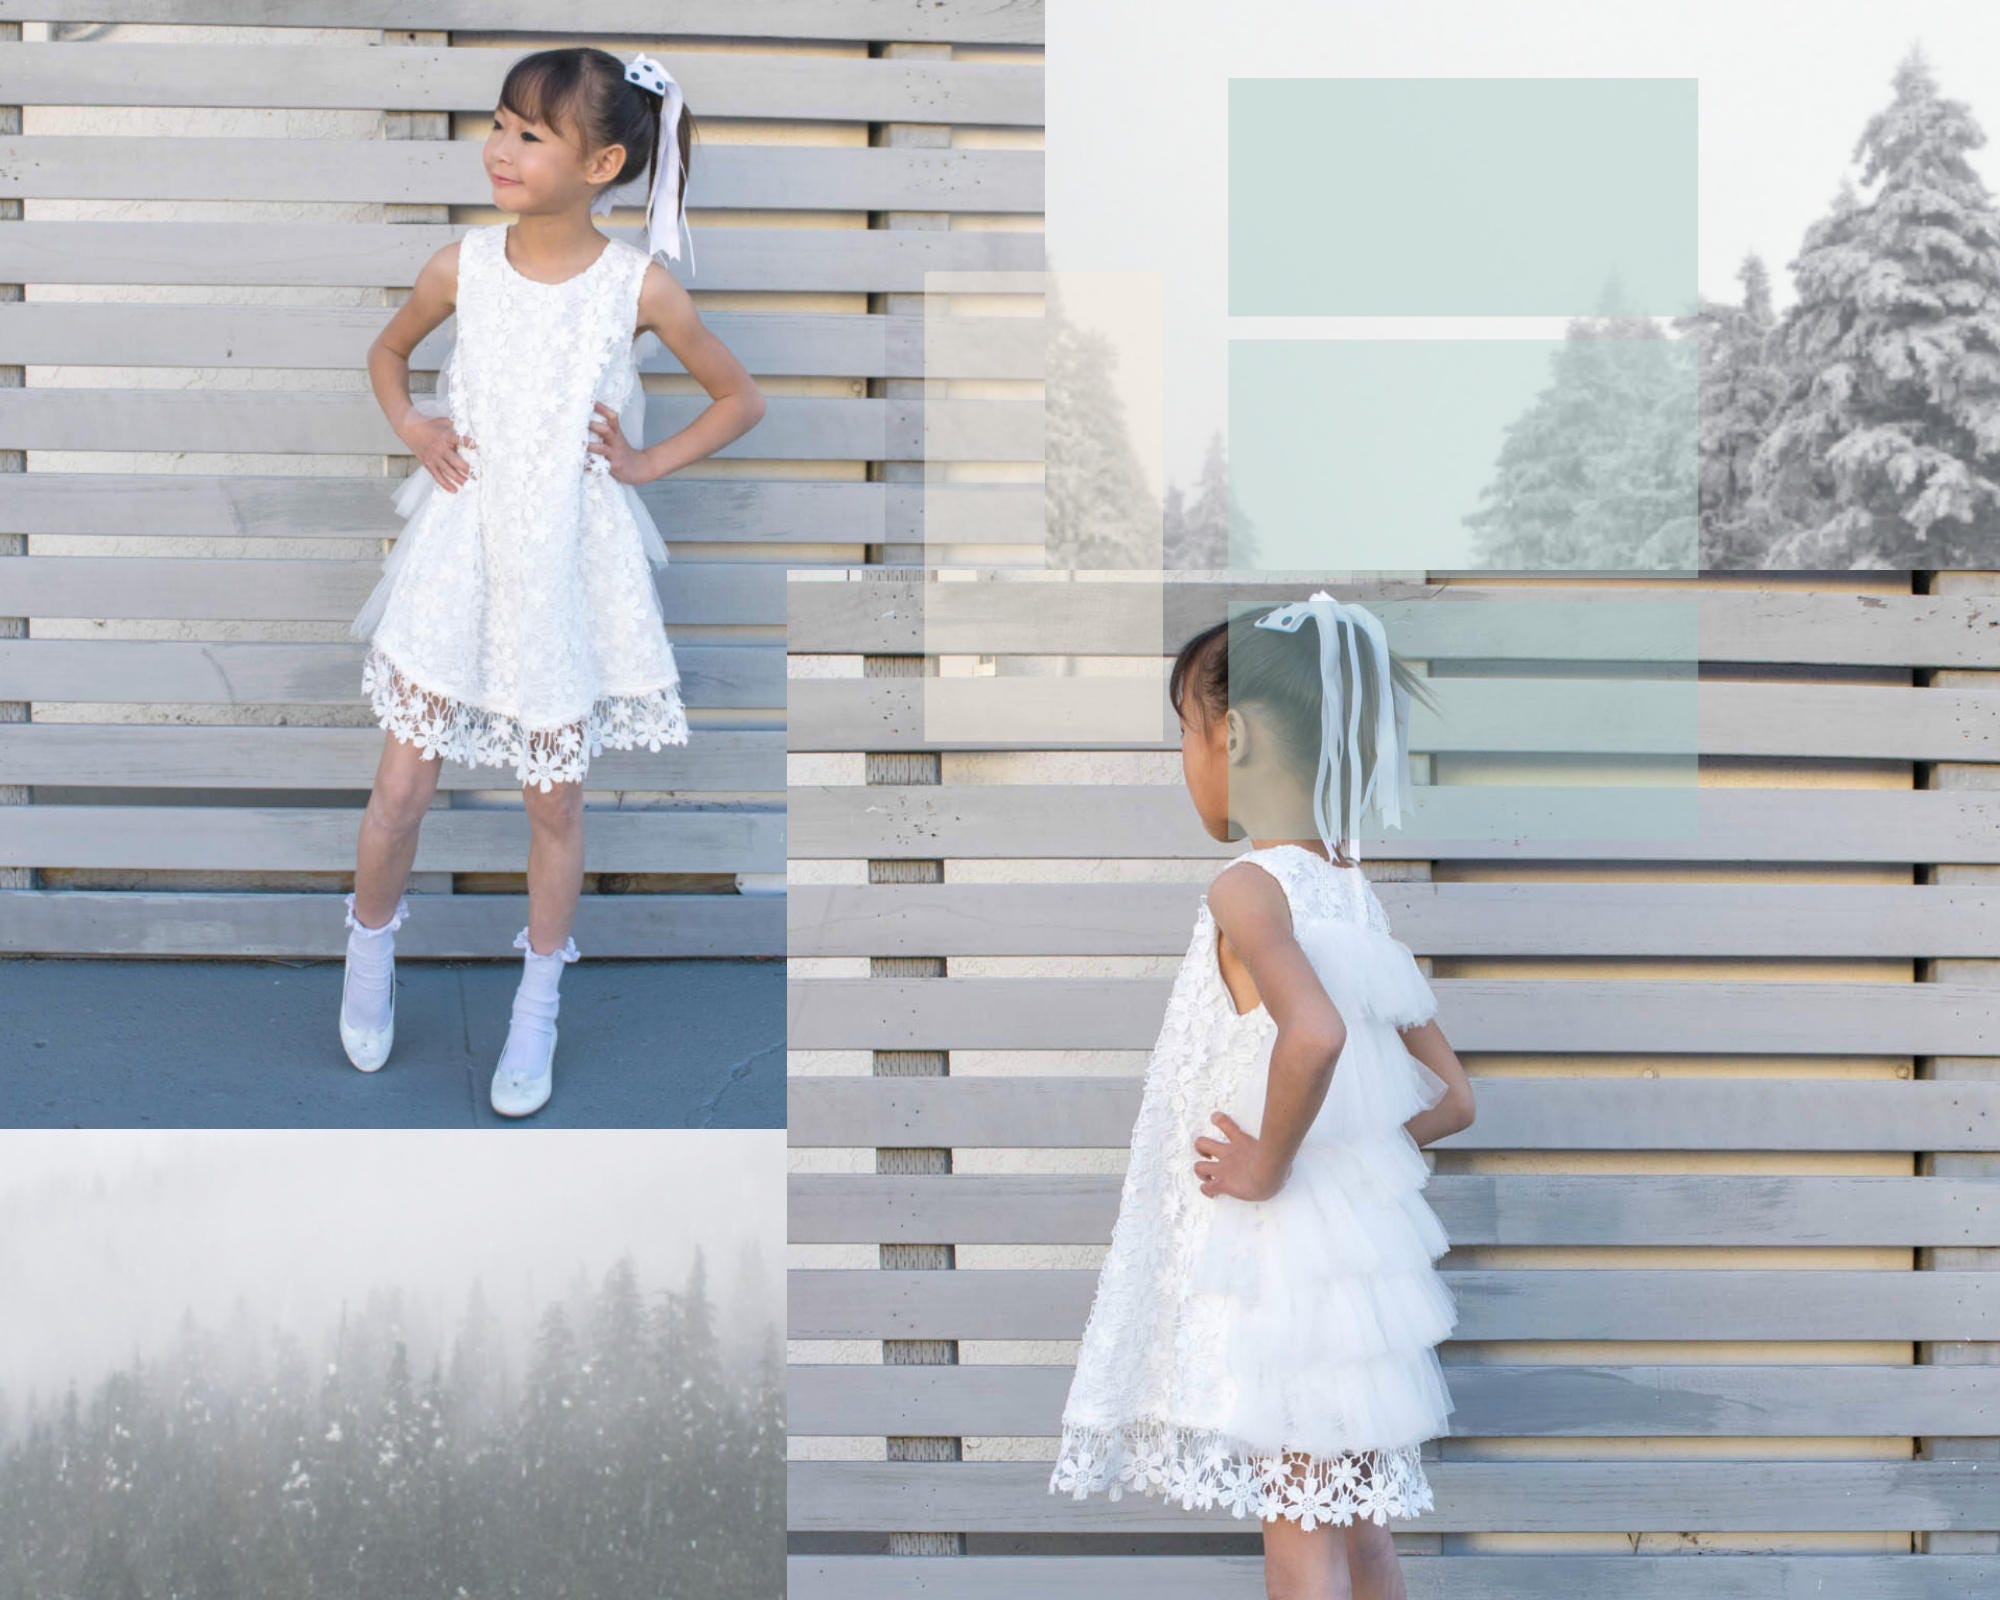 Girl snow white floral lace feathery tulle flaps knee length dress girl snow white floral lace feathery tulle flaps knee length dress wedding flower girl pageant party baptism christening communion mightylinksfo